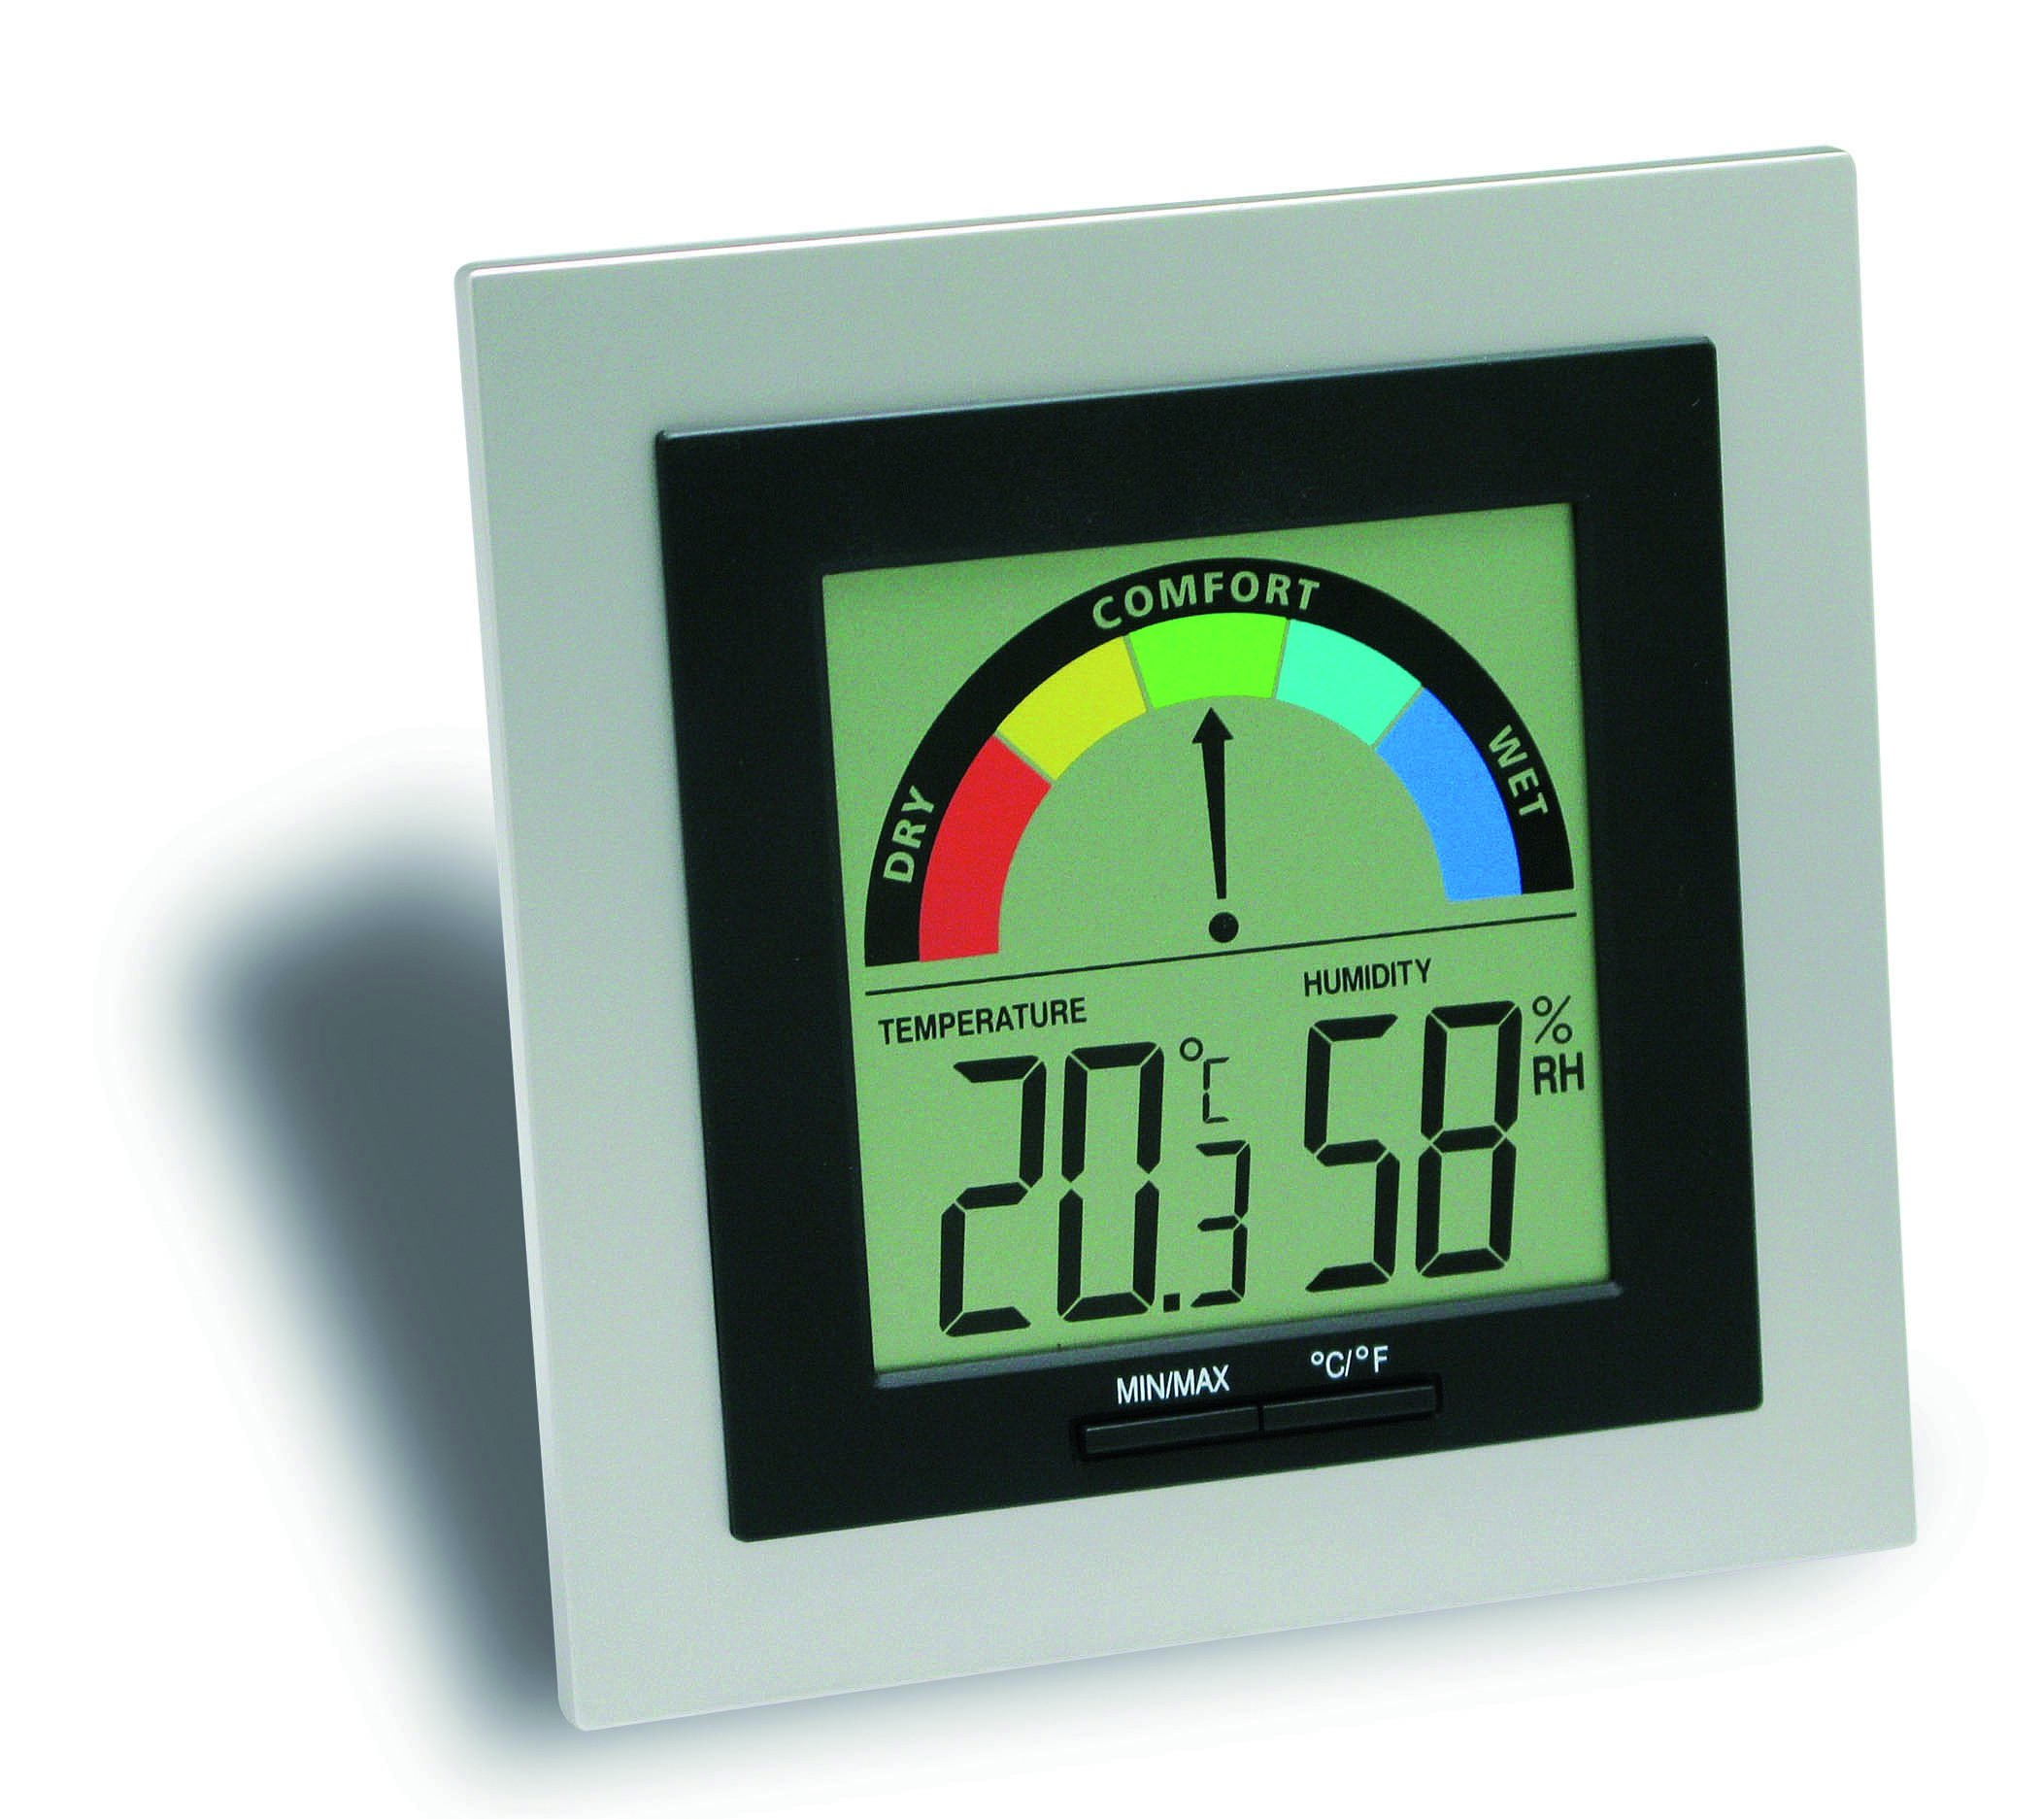 tfa dostmann digital thermo hygrometer ws 9430 ebay. Black Bedroom Furniture Sets. Home Design Ideas